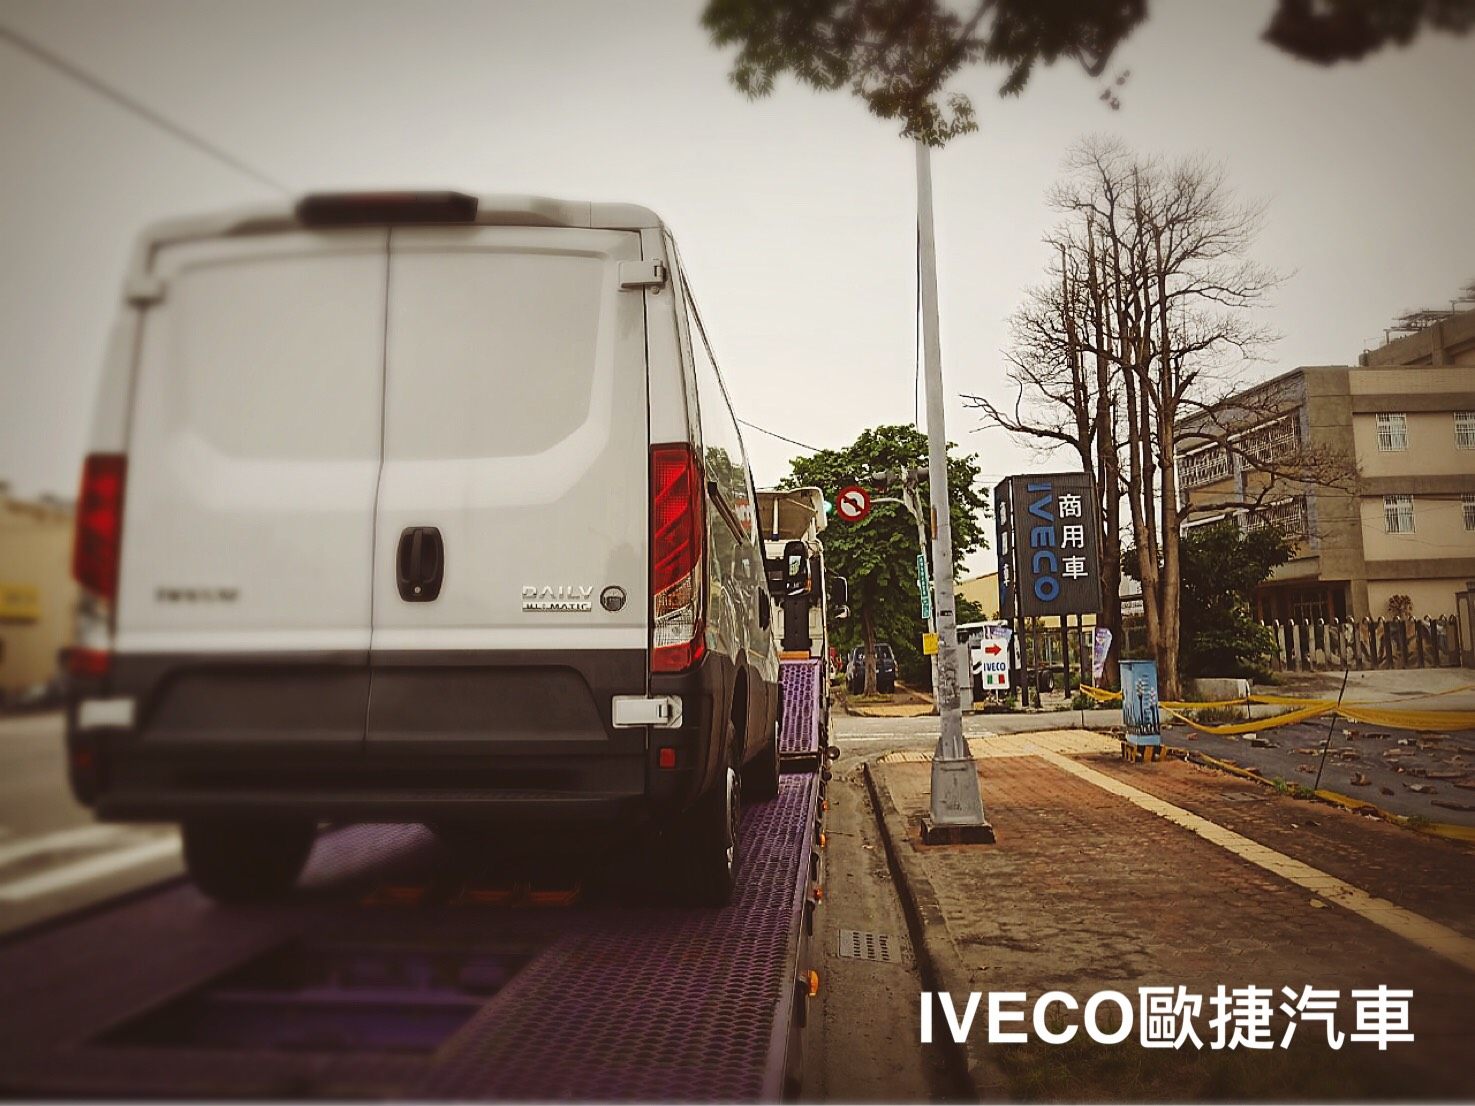 IVECO貨車 IVECO